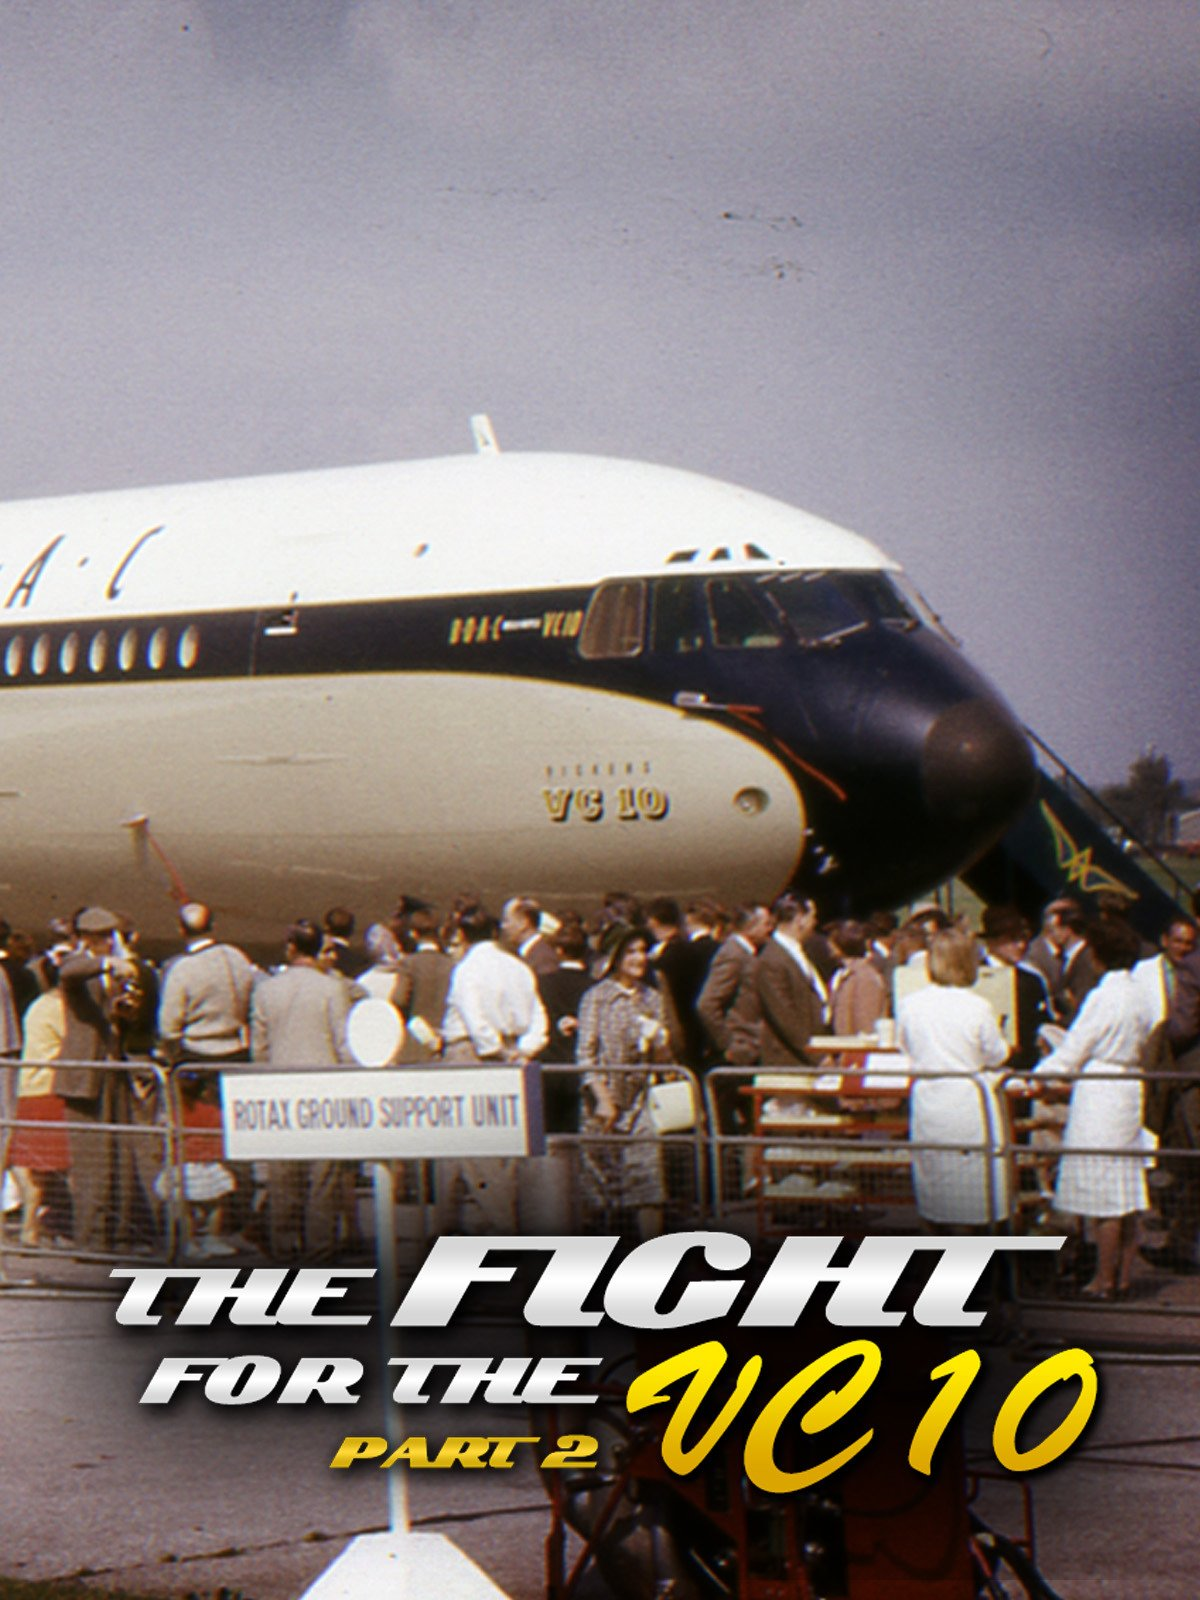 Fight for the VC-10: Part 2